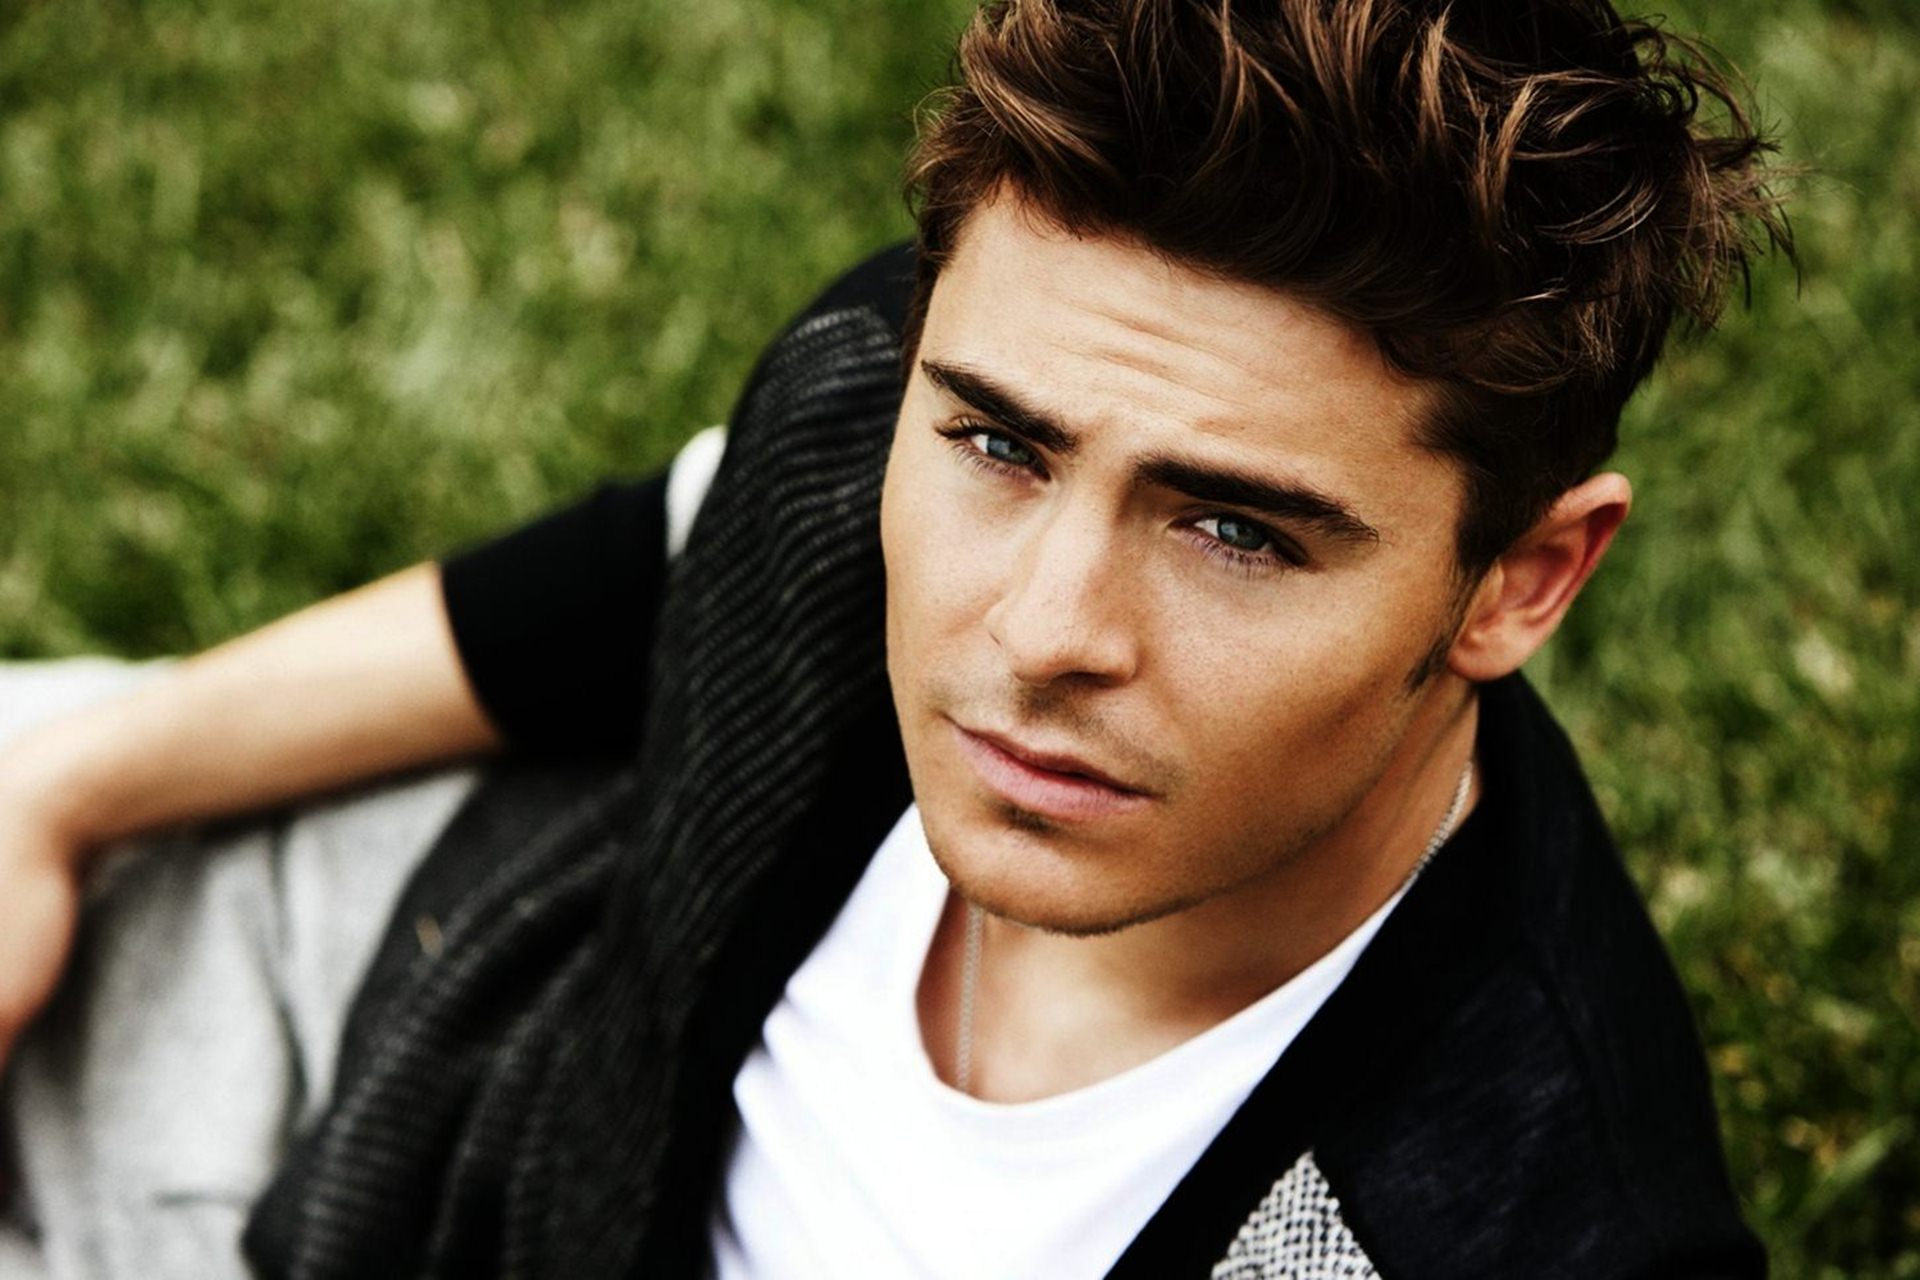 download zac efron wallpaper gallery